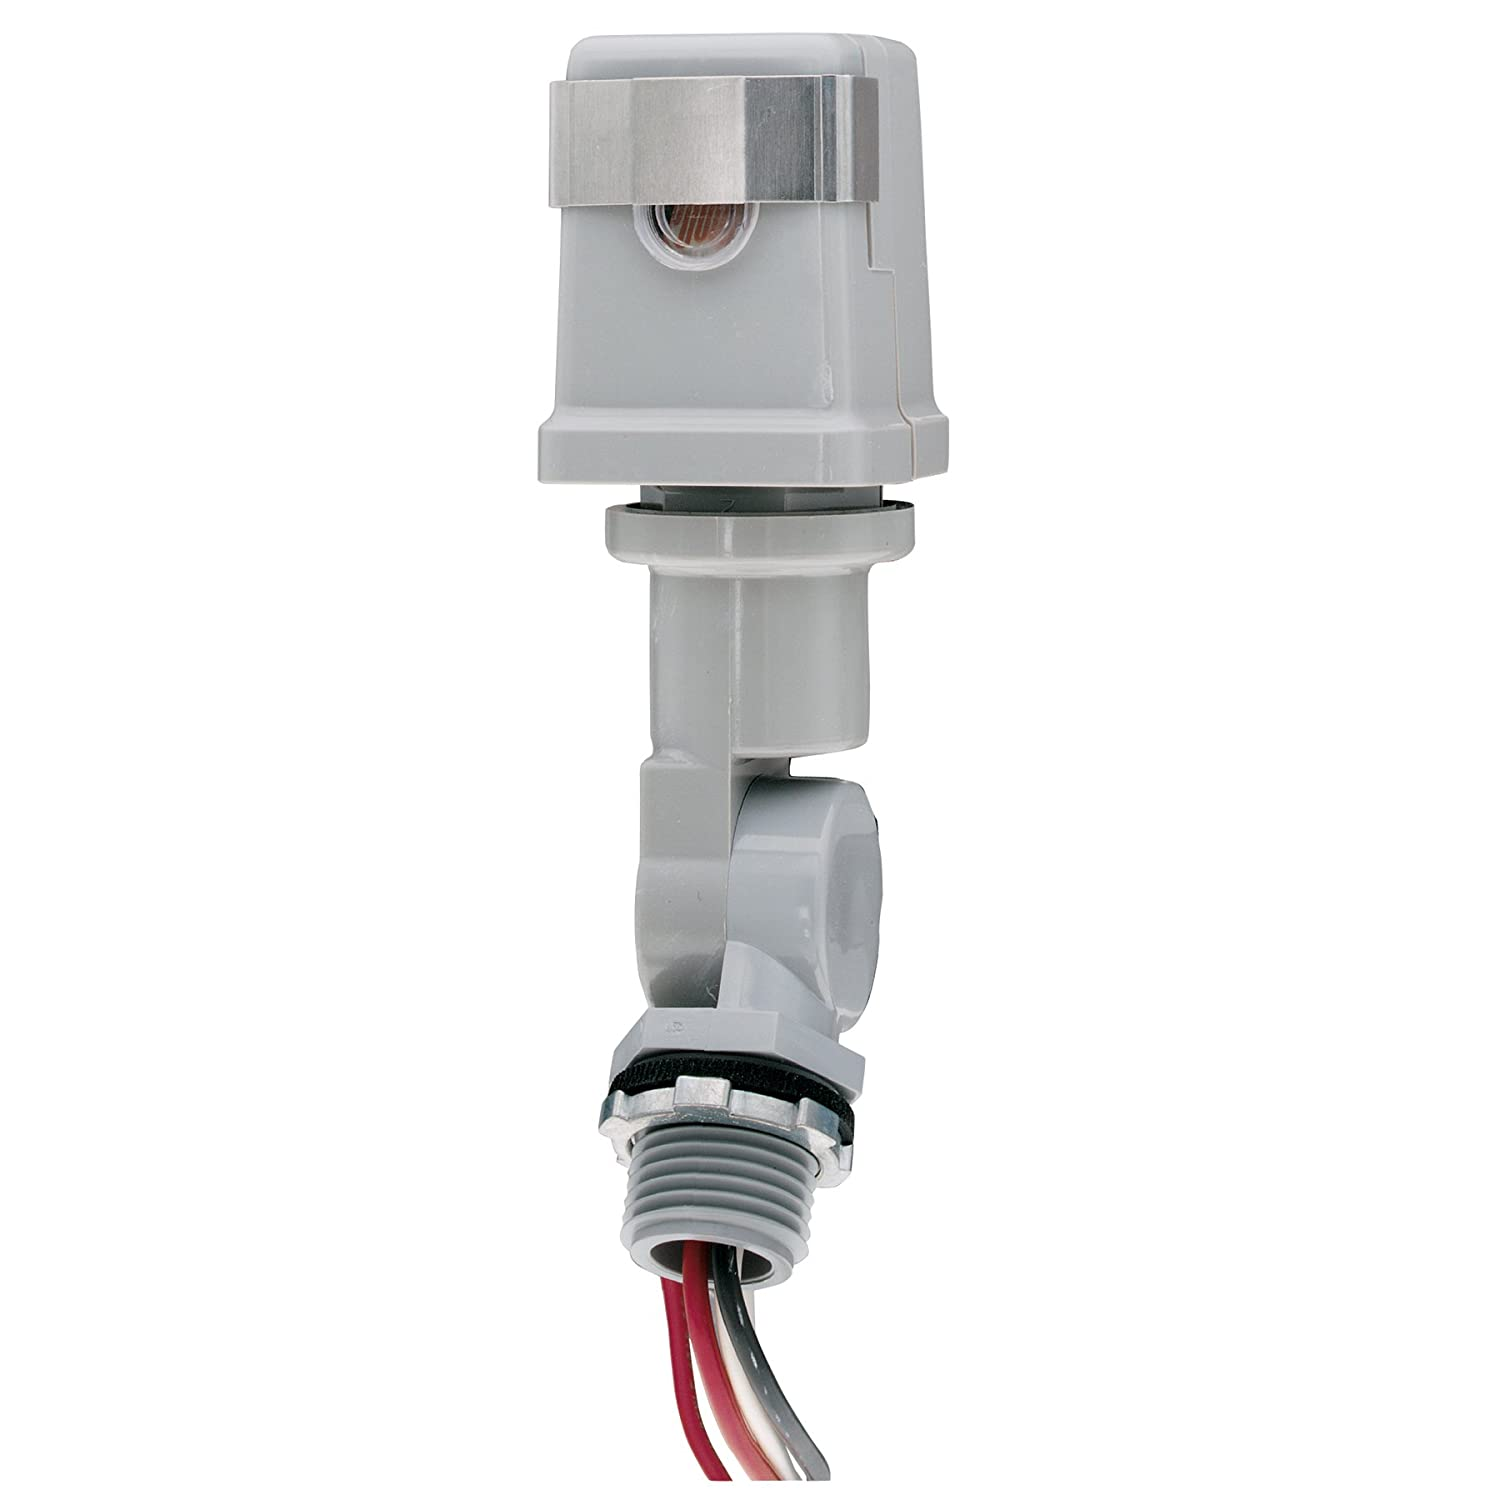 intermatic k4221c 120 volt stem and swivel mount thermal photocontrol  intermatic photo control wiring #8